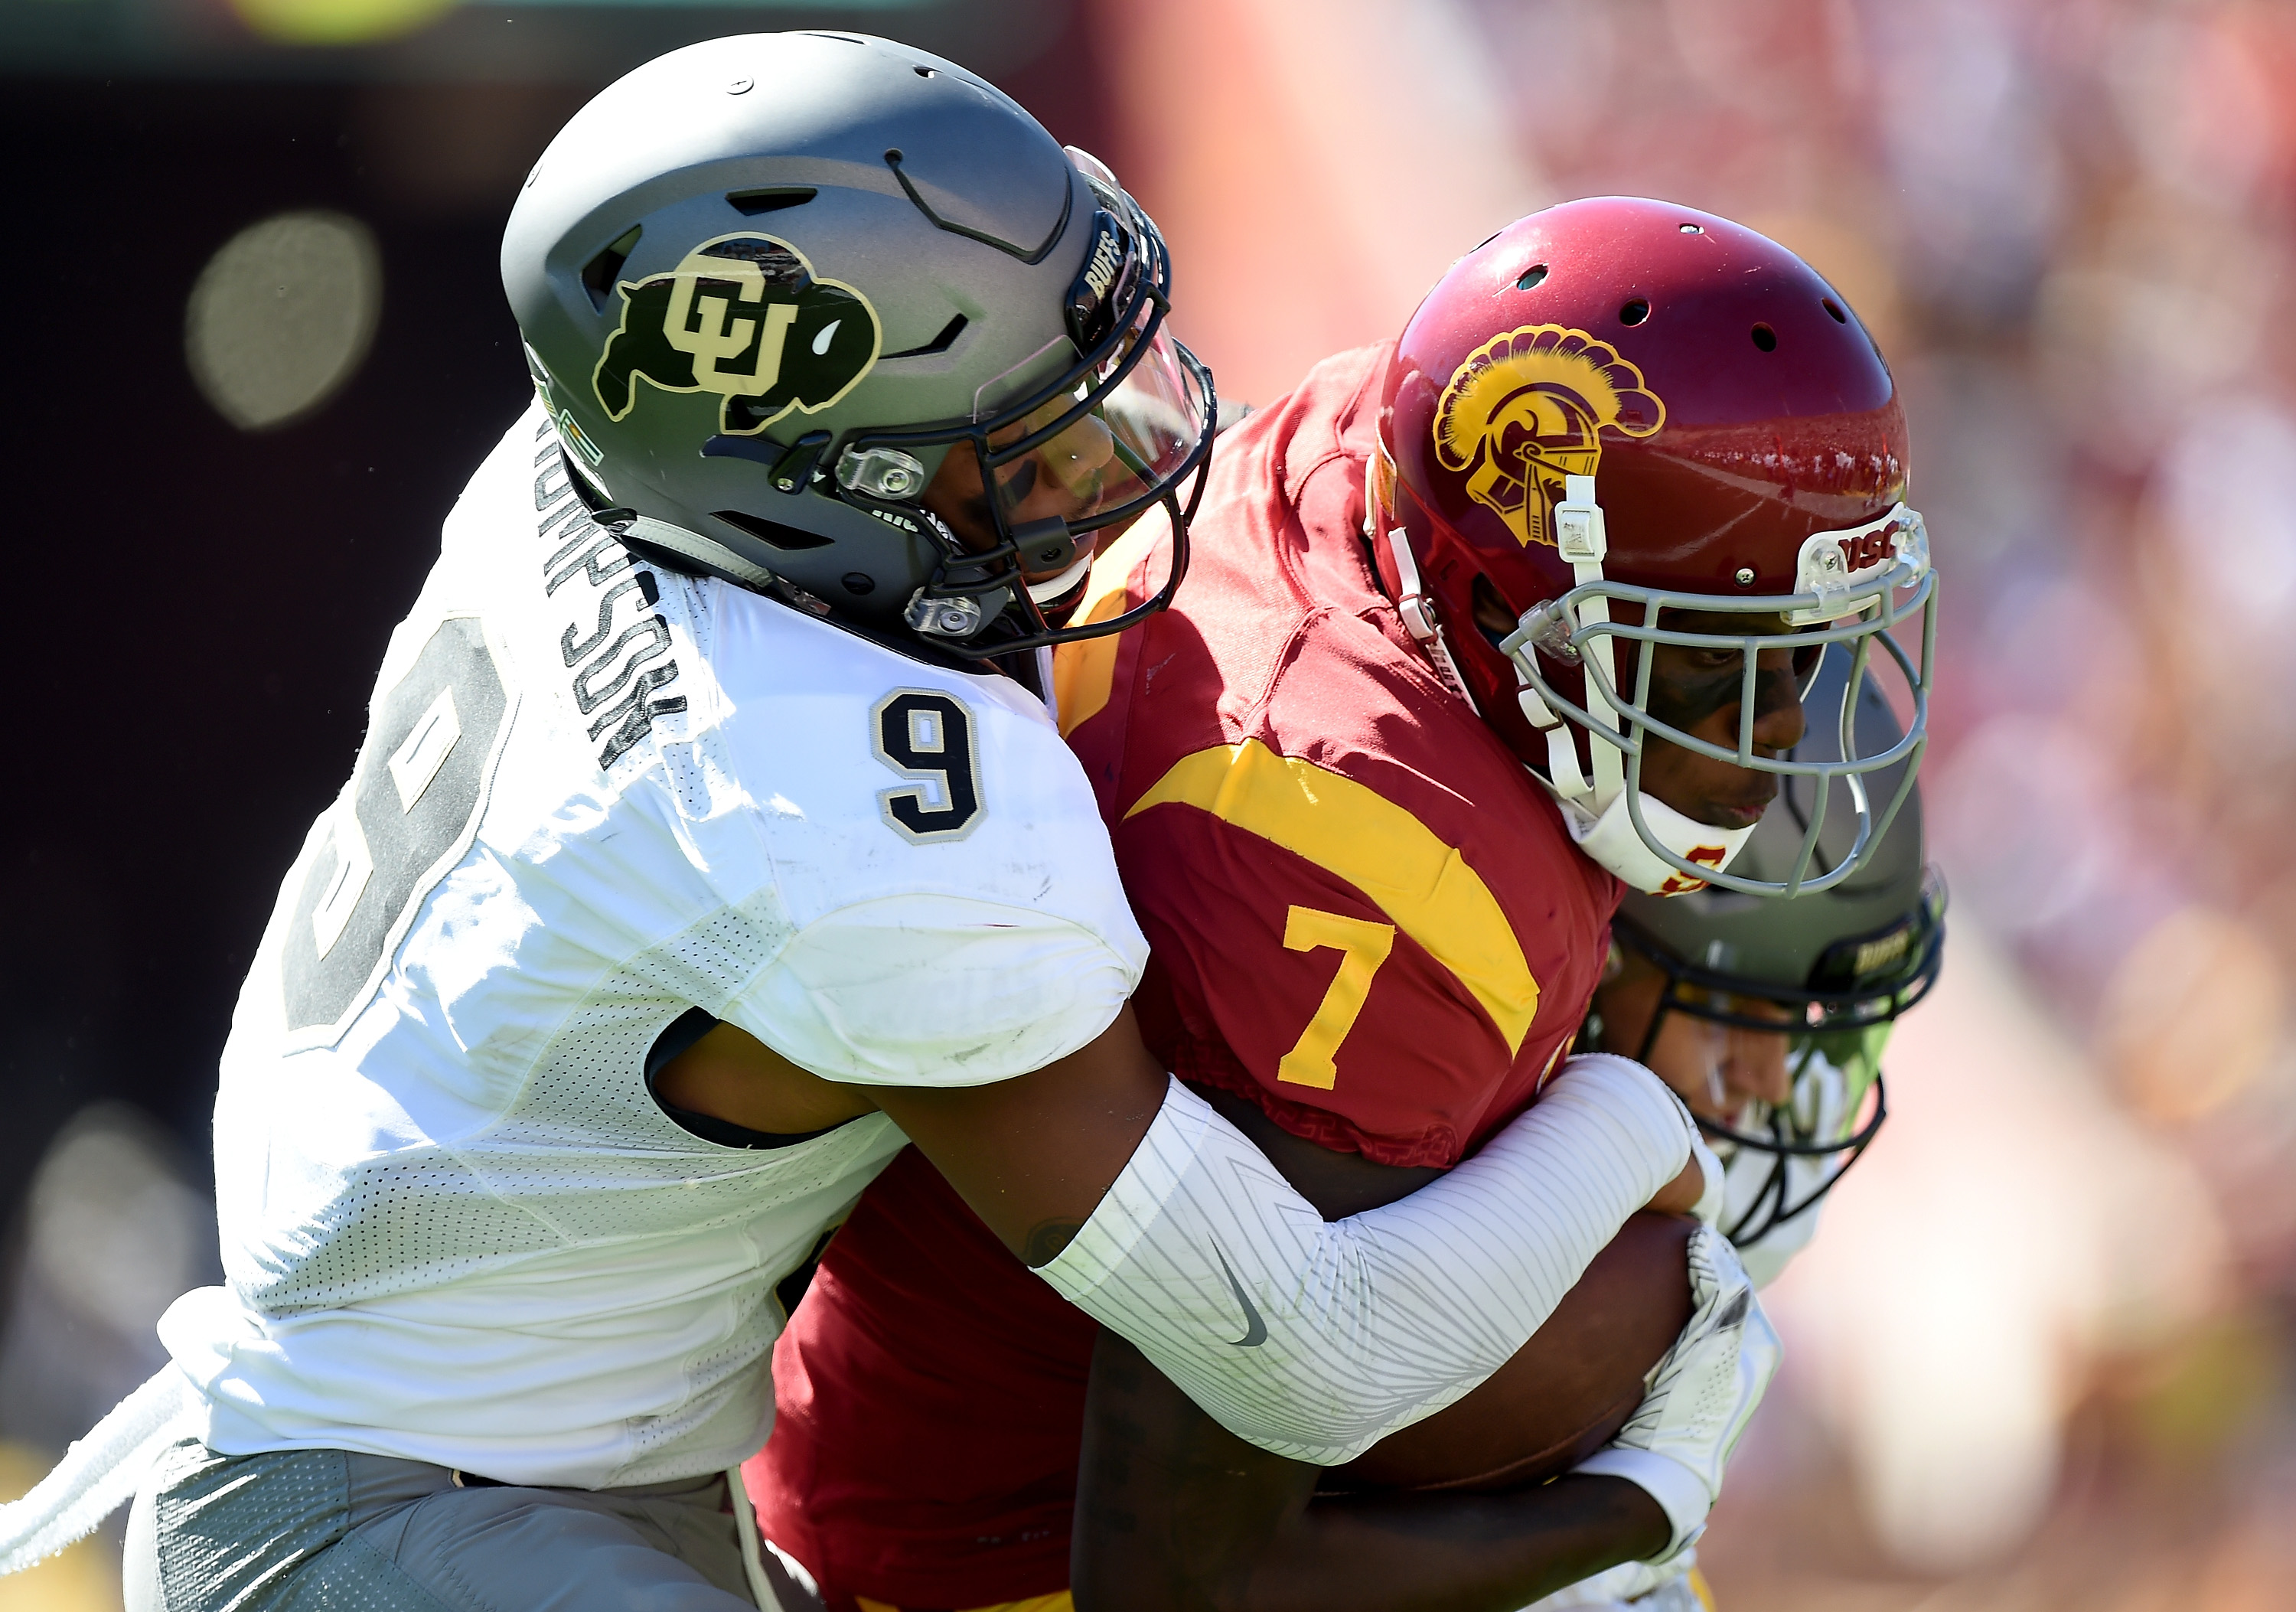 Colorado's Tedric Thompson was a second-team All-Pac-12 selection as a senior. (Getty Images)